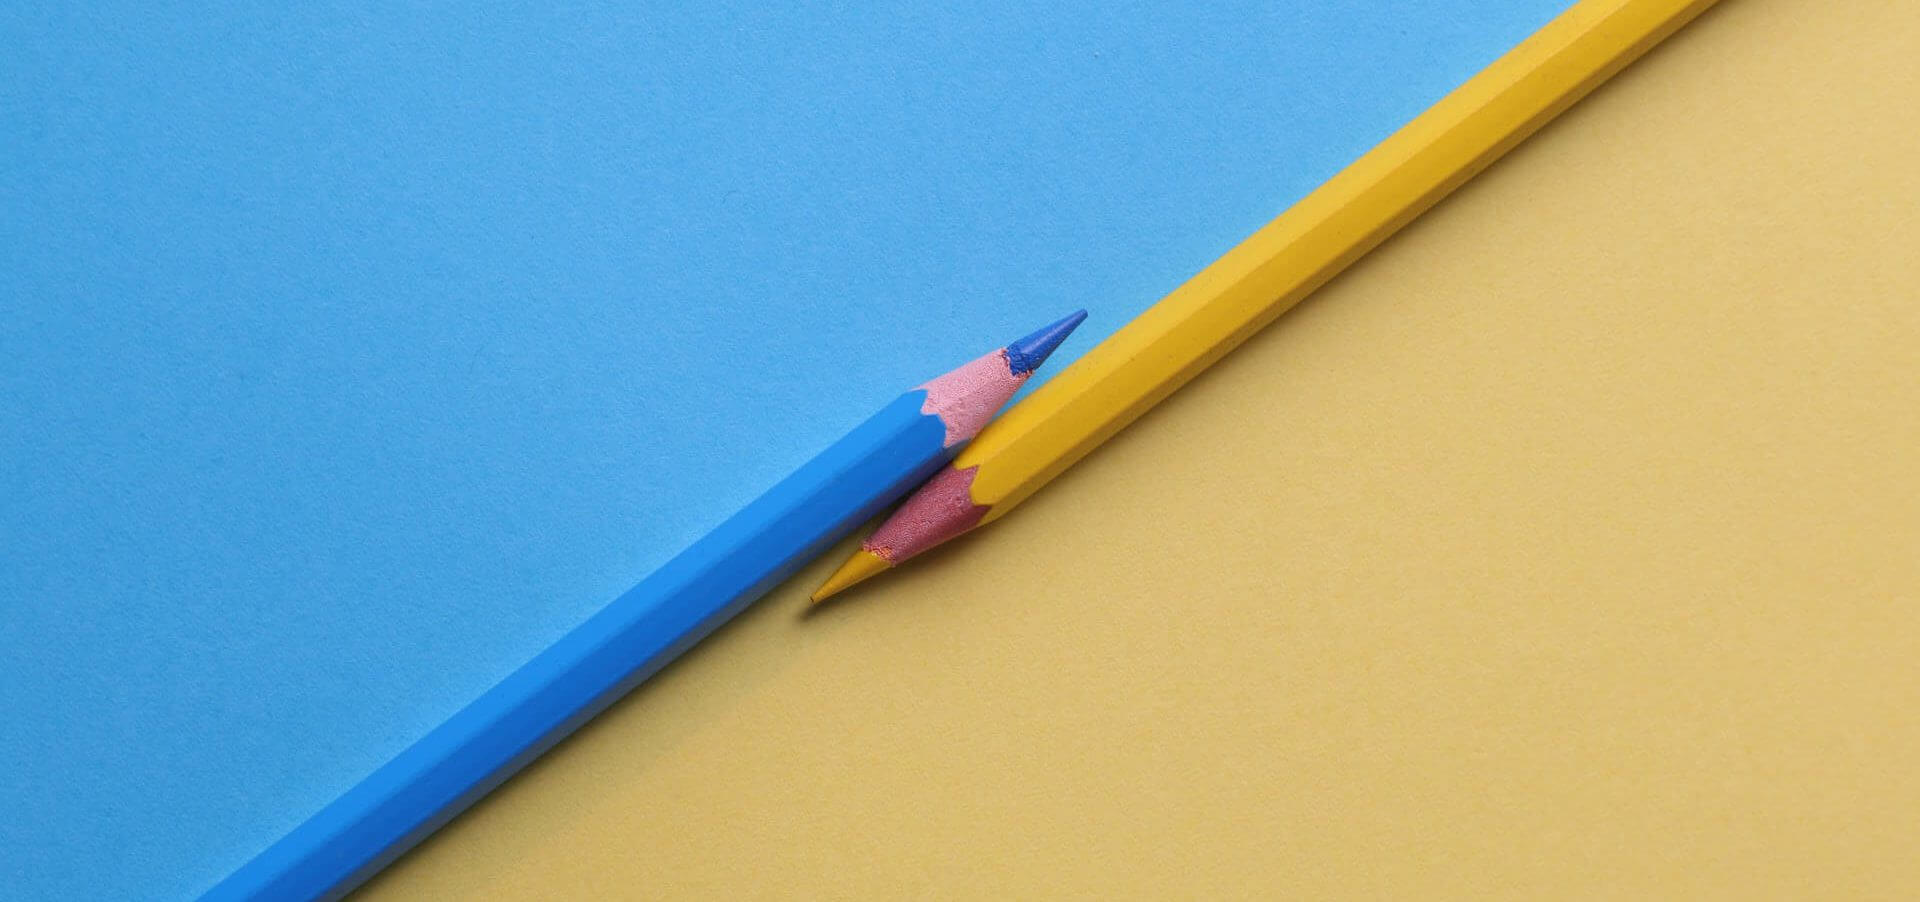 Blue and beige color pencils laying parallel to each other.